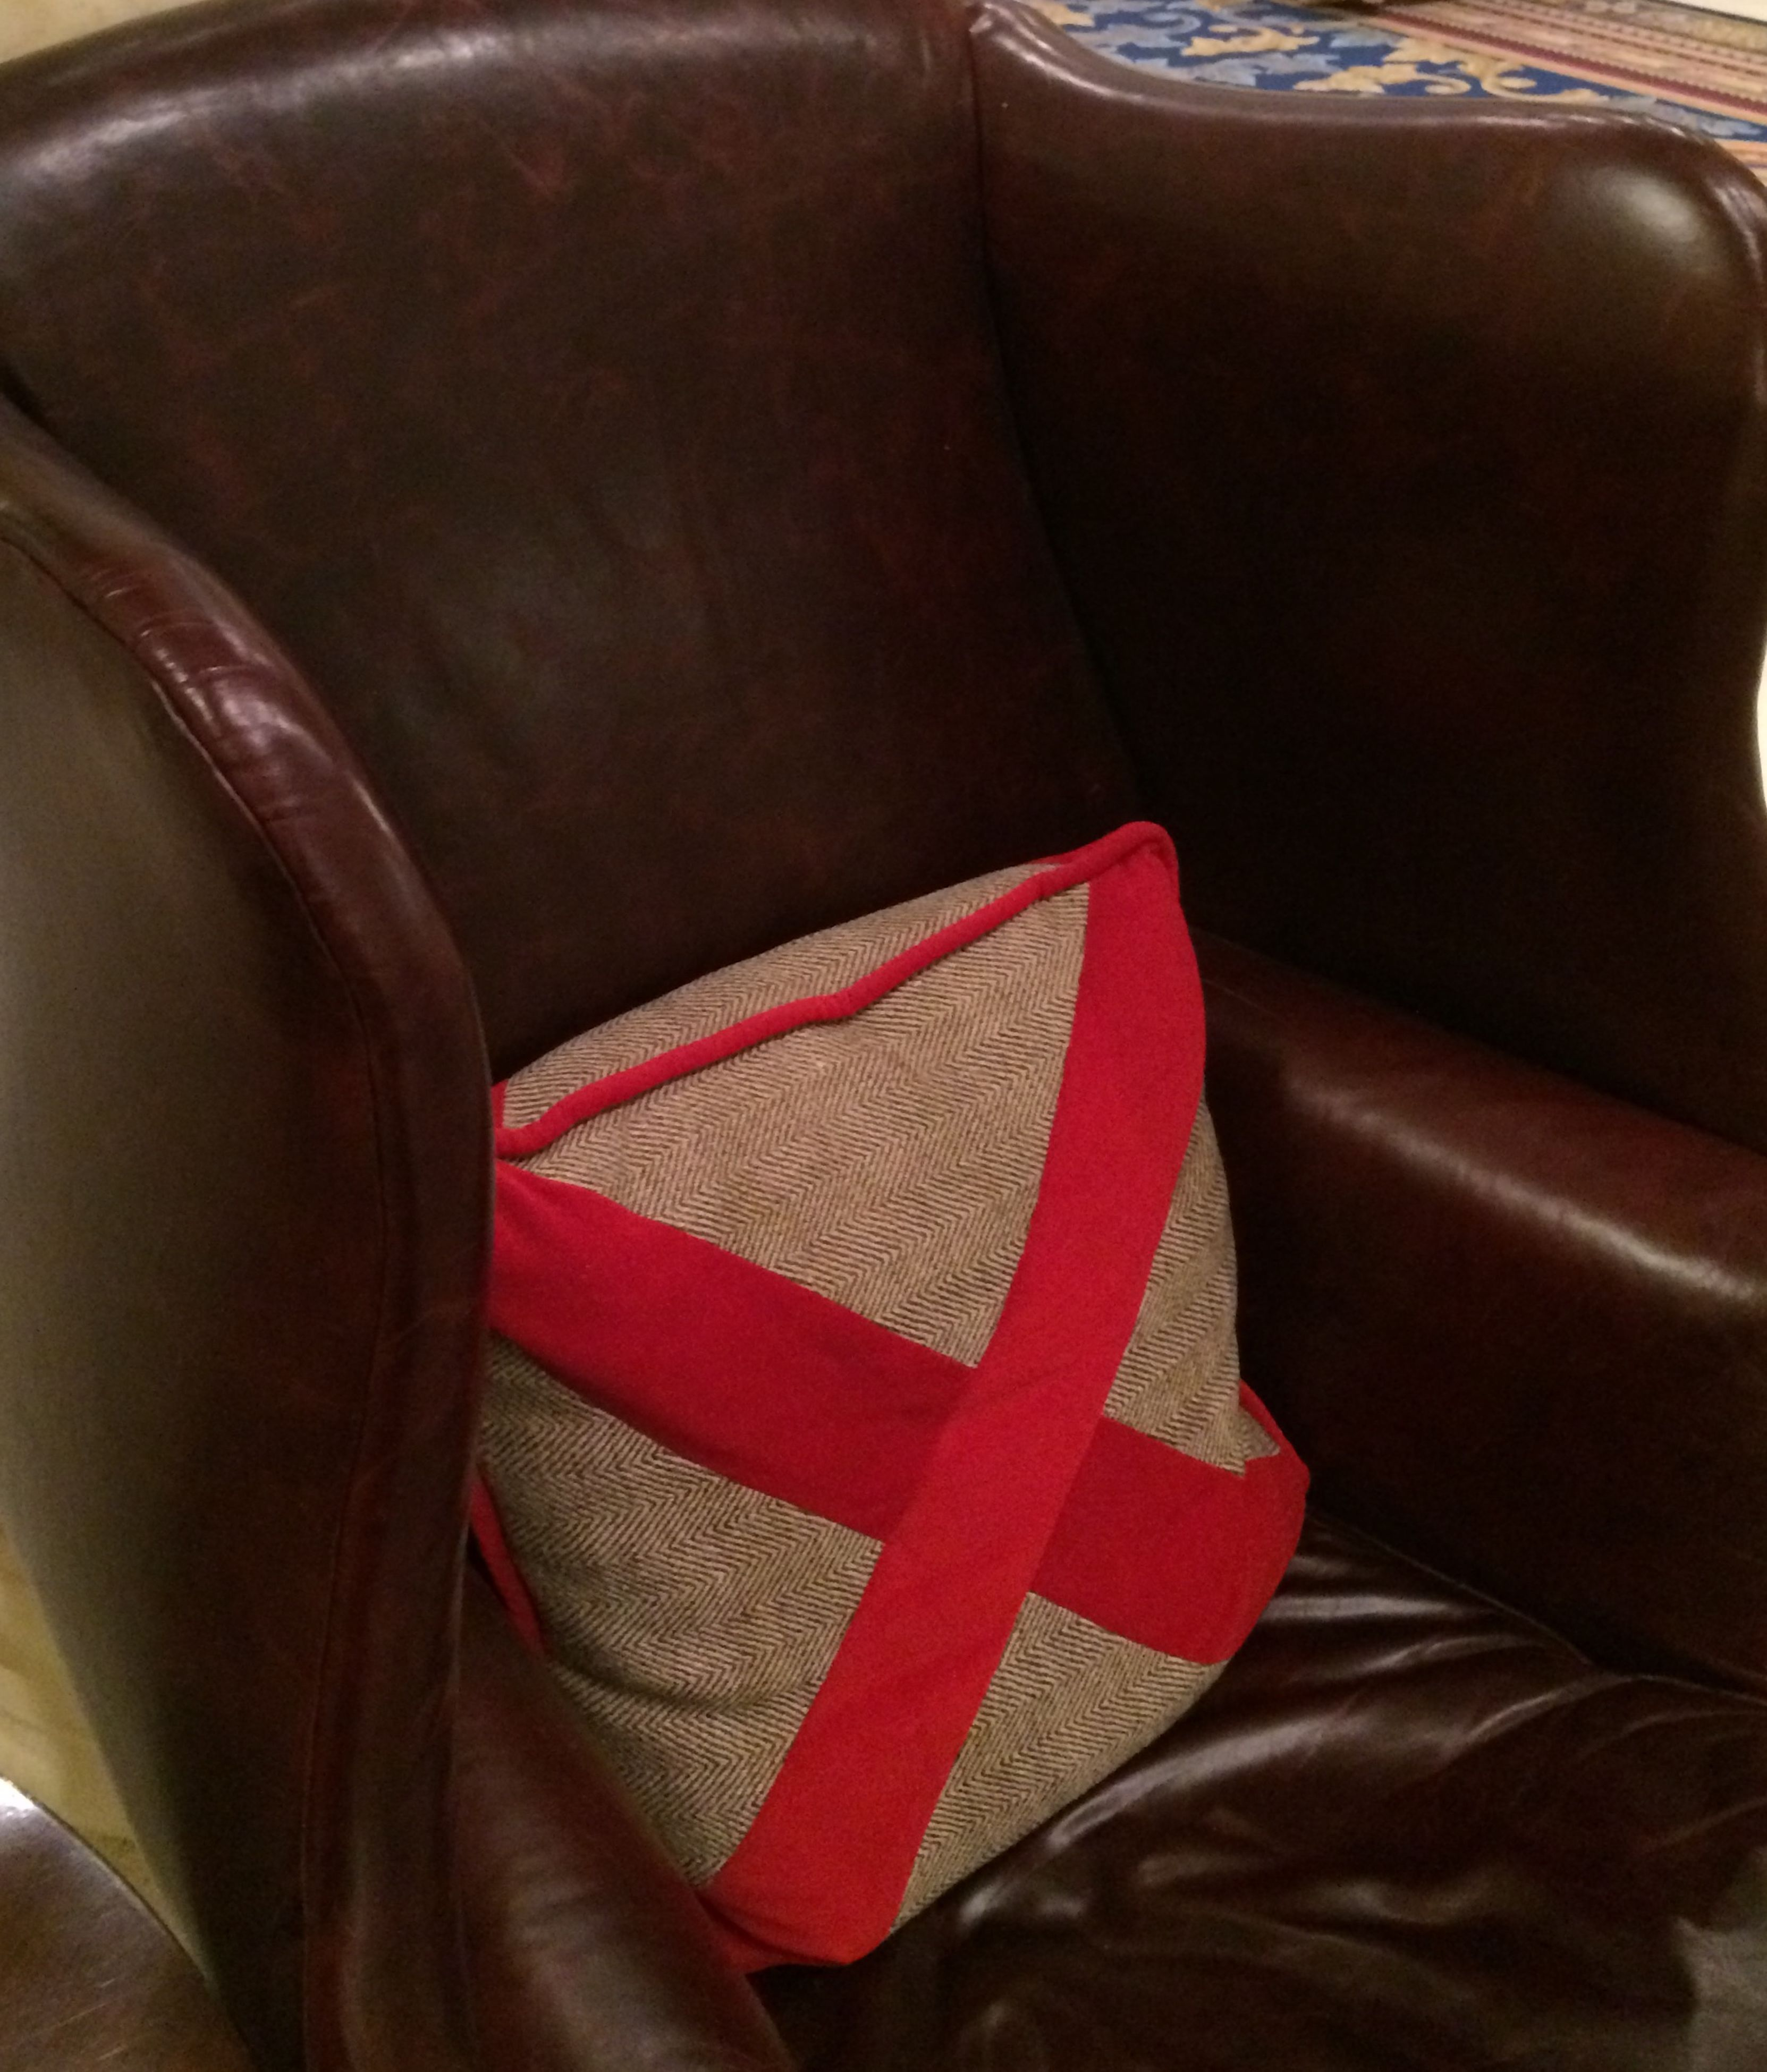 indoors, red, close-up, still life, textile, absence, chair, table, fabric, no people, high angle view, seat, part of, empty, furniture, fashion, book, clothing, detail, shoe